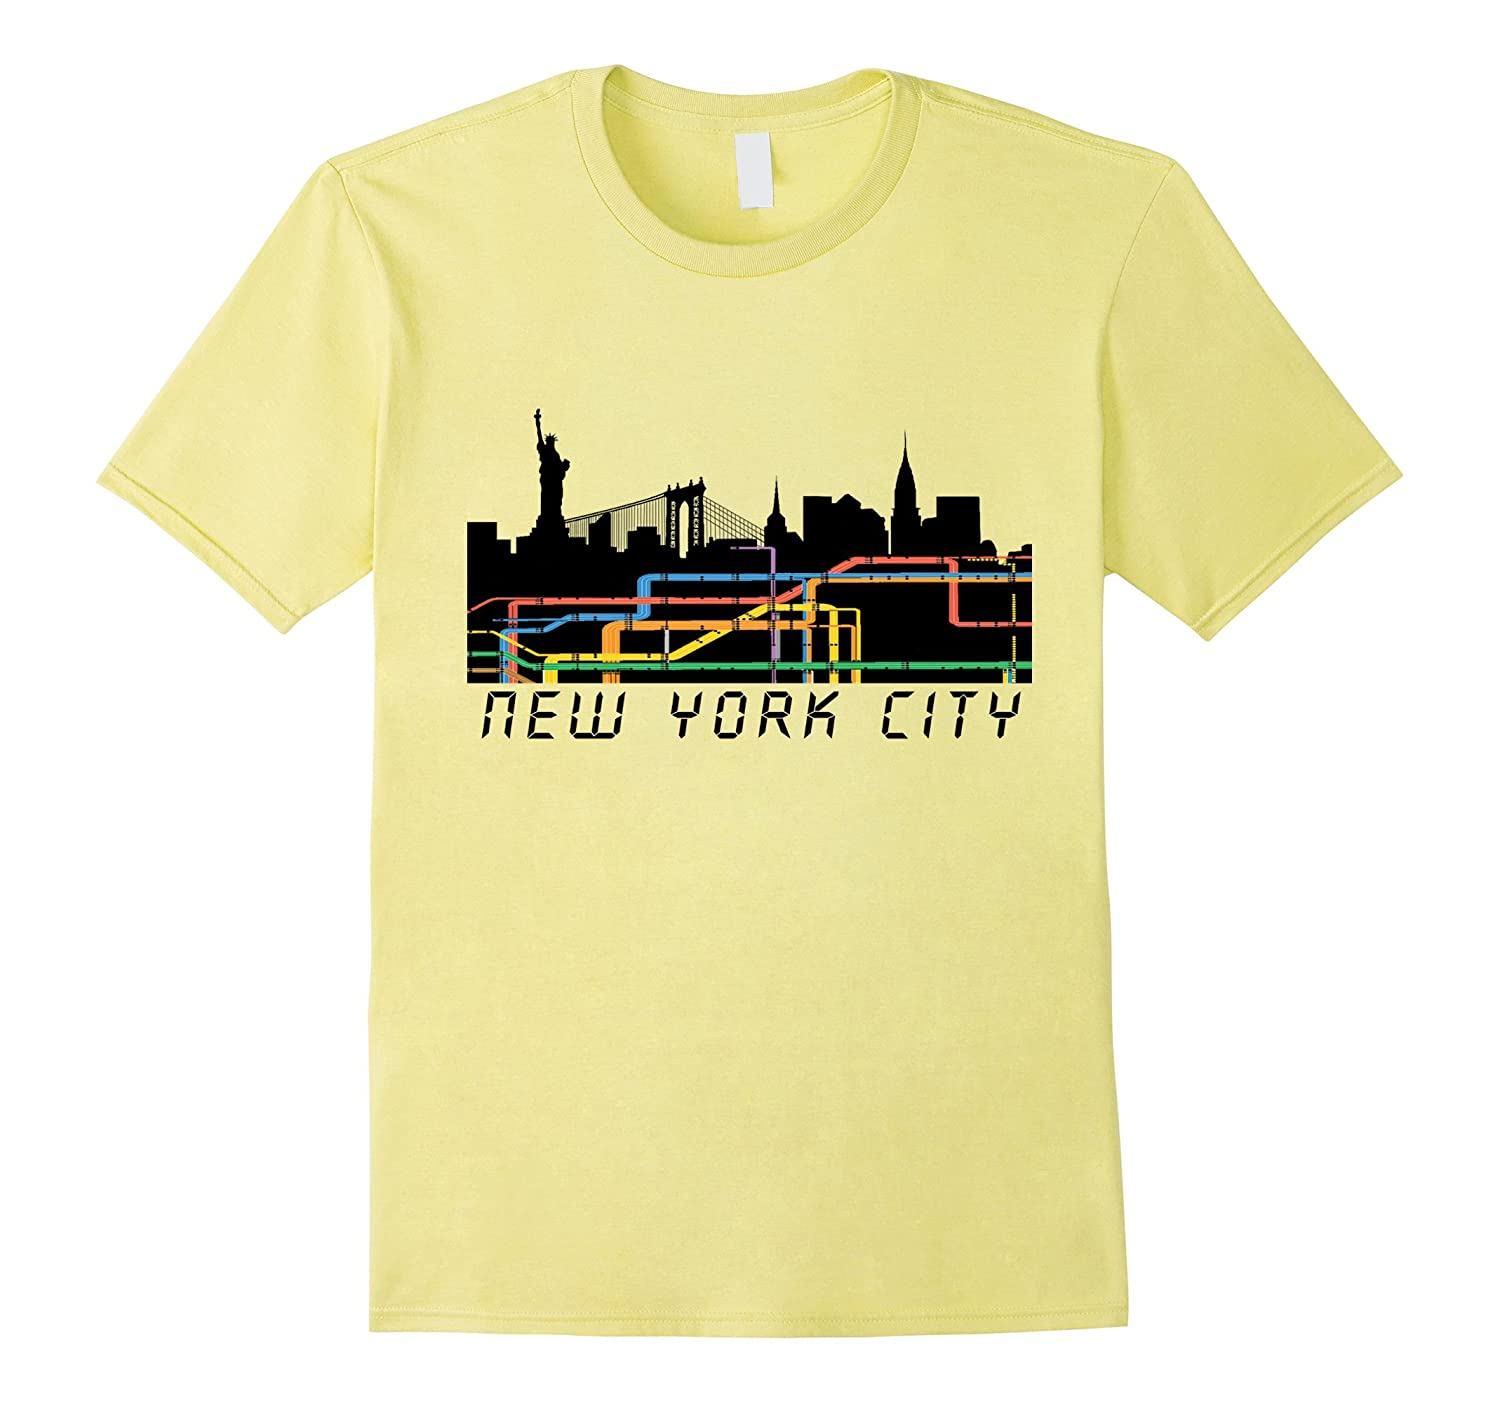 Nyc Subway Map T Shirt.New York City Subway Map T Shirt Nyc Skyline Tee Th